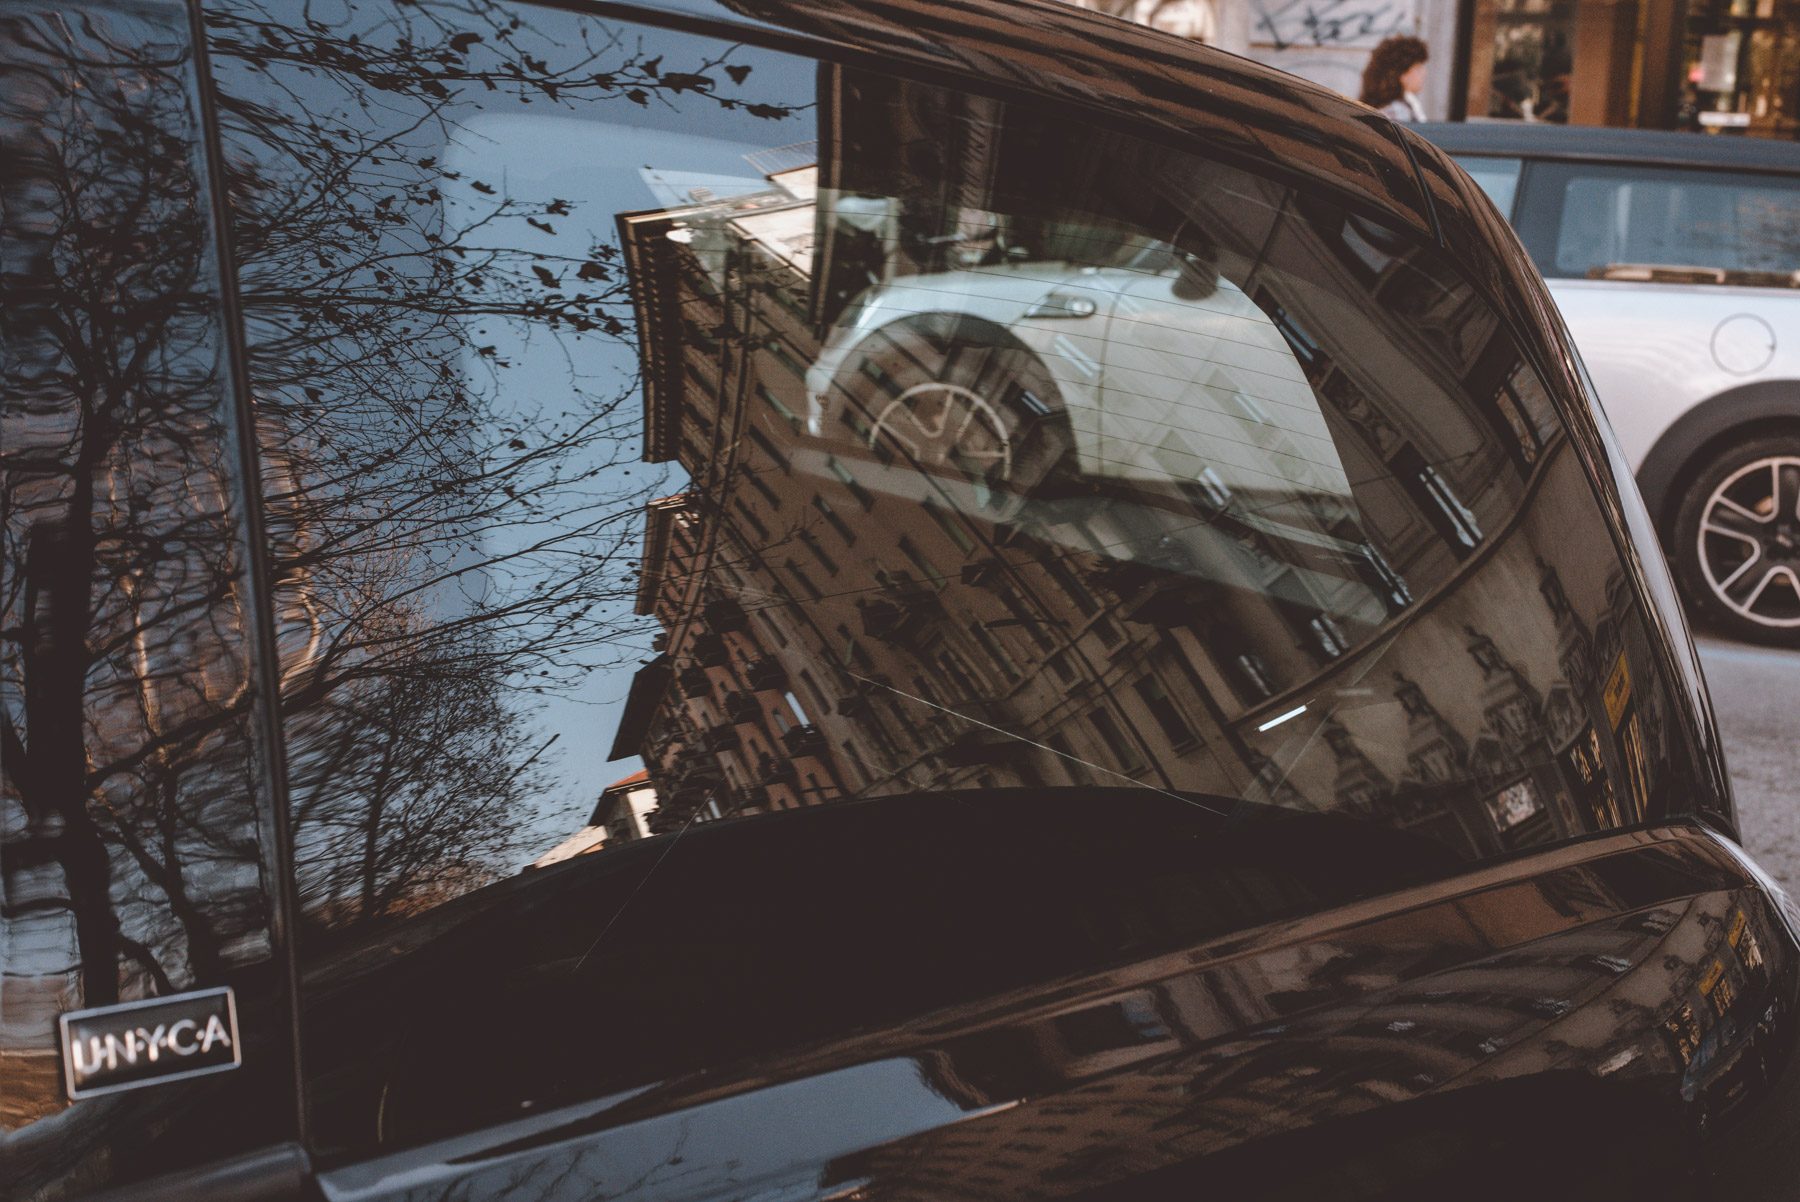 A street photograph showing reflections of a car some buildings and trees on the streets of Milano